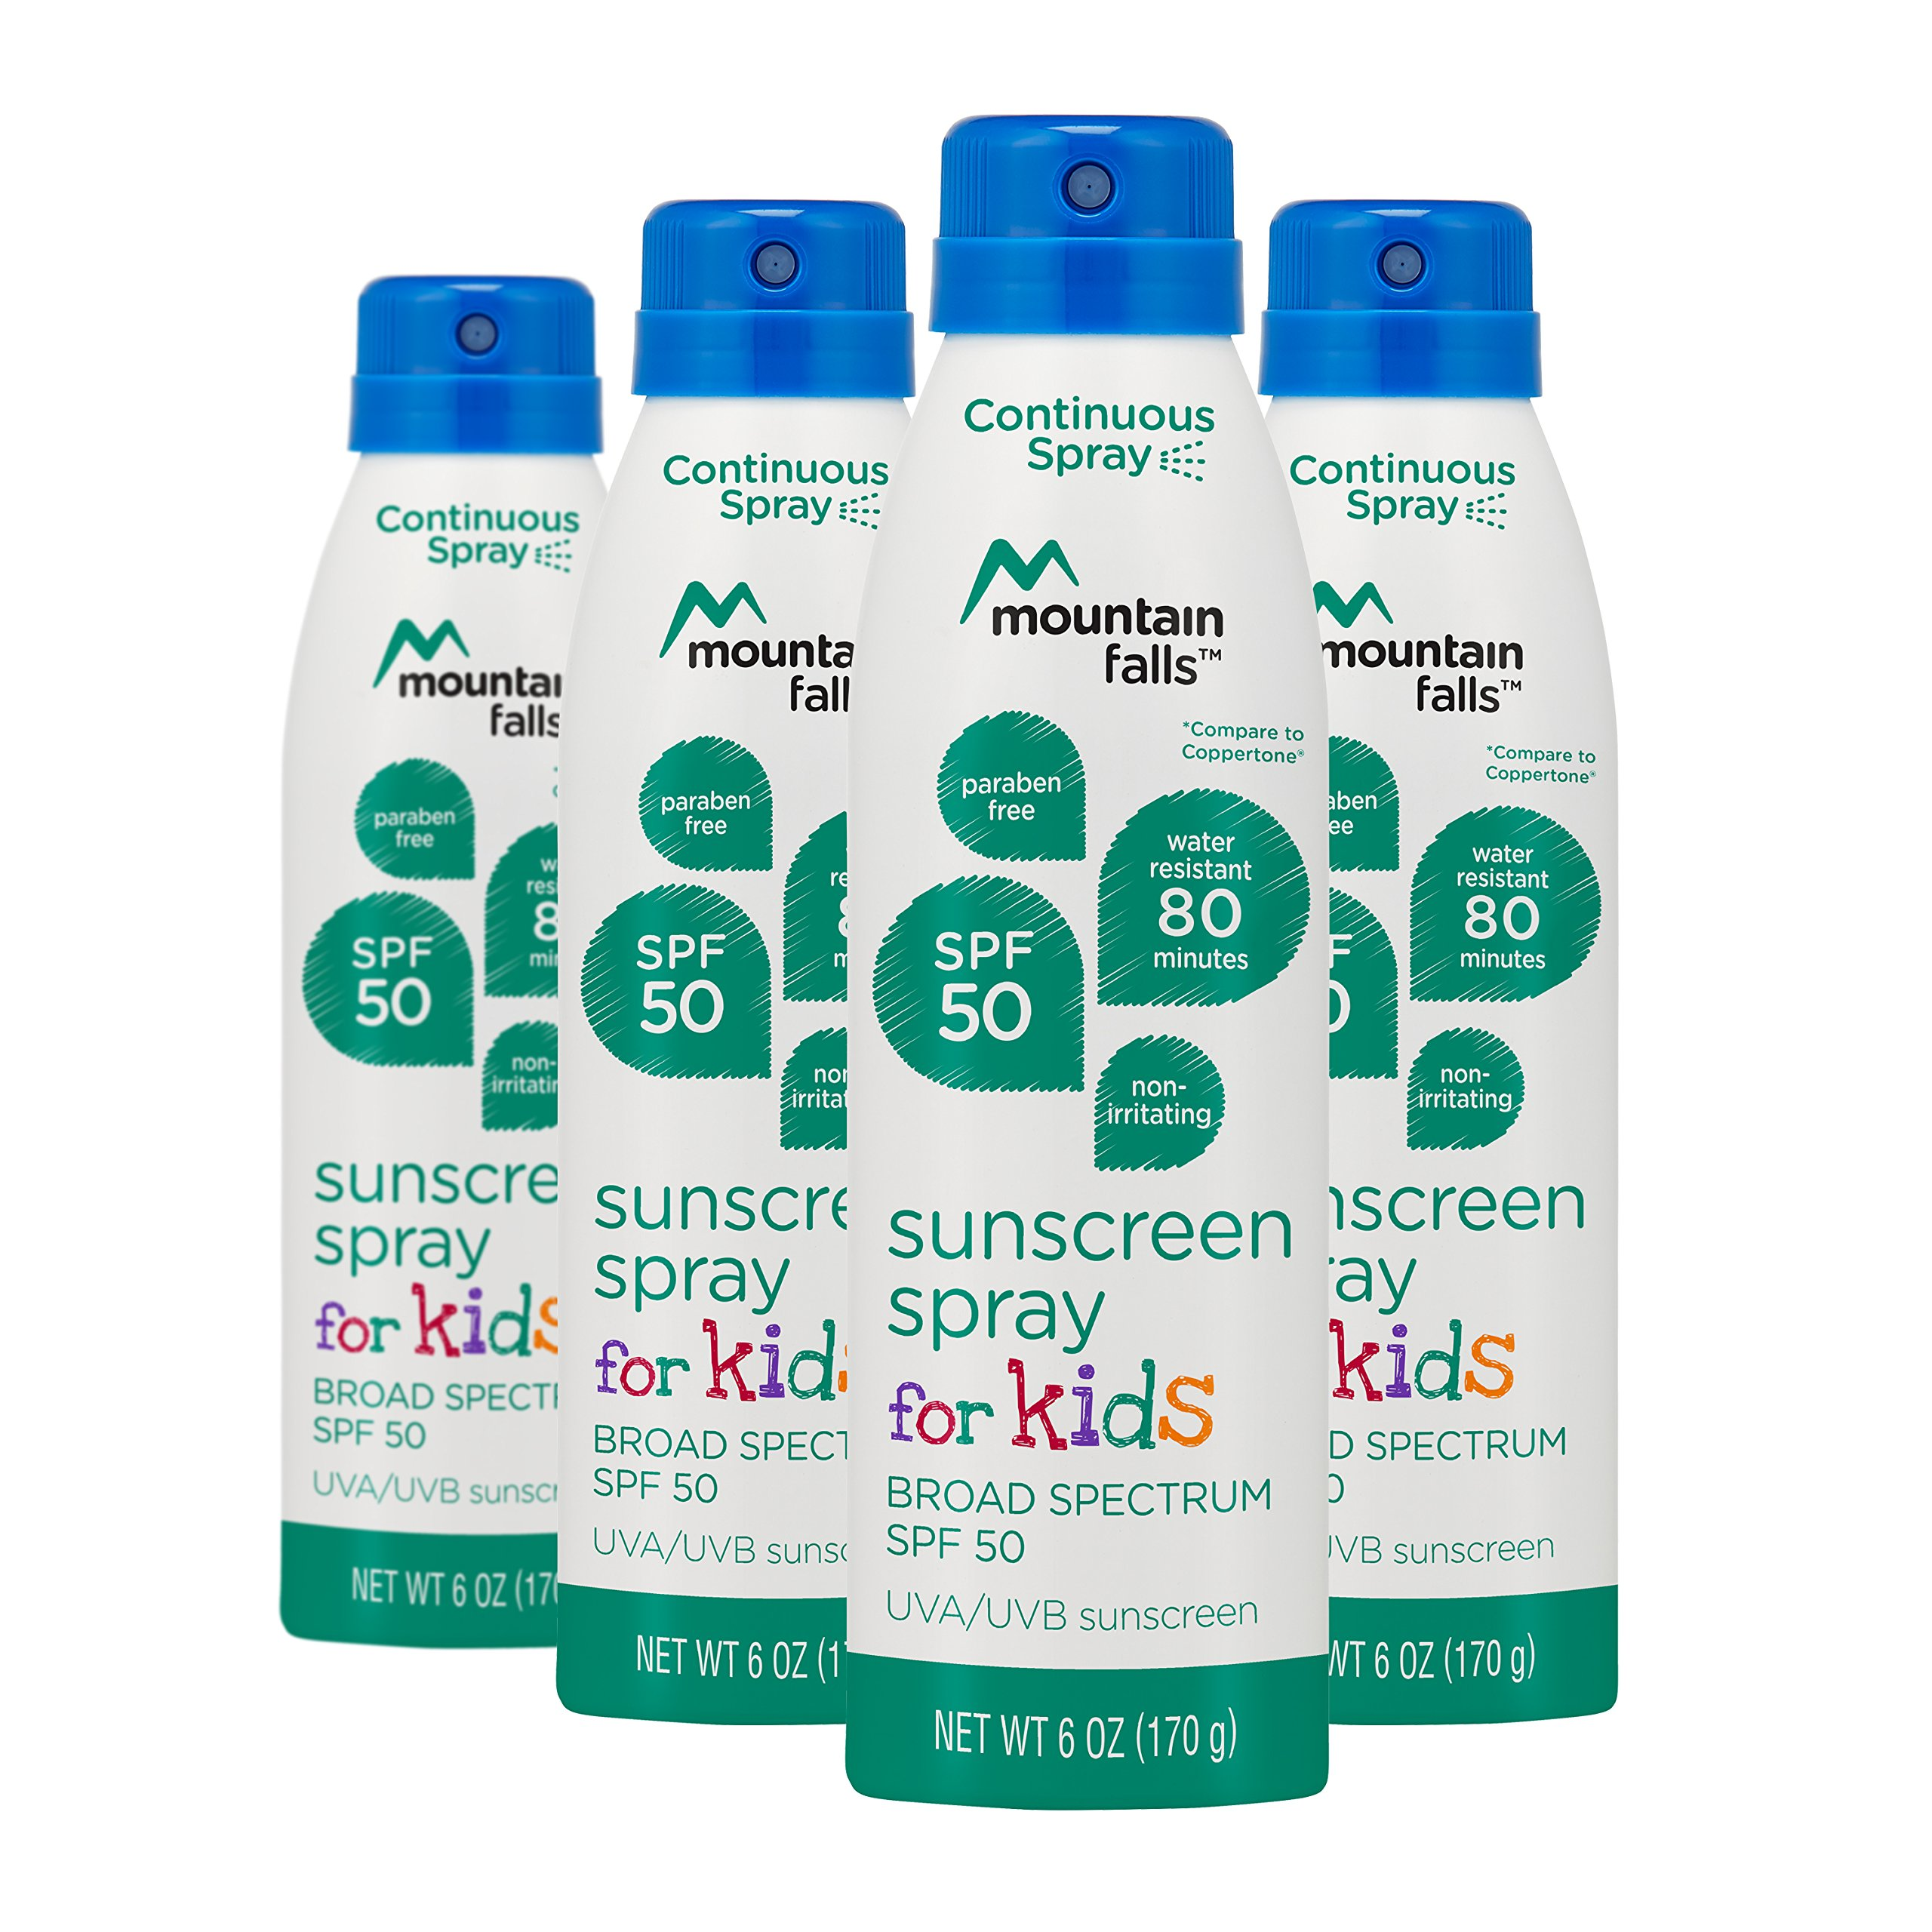 Mountain Falls Kids Sunscreen Continuous Spray, SPF 50 Broad Spectrum UVA/UVB Protection, Compare to Coppertone, 6 Ounce (Pack of 4)